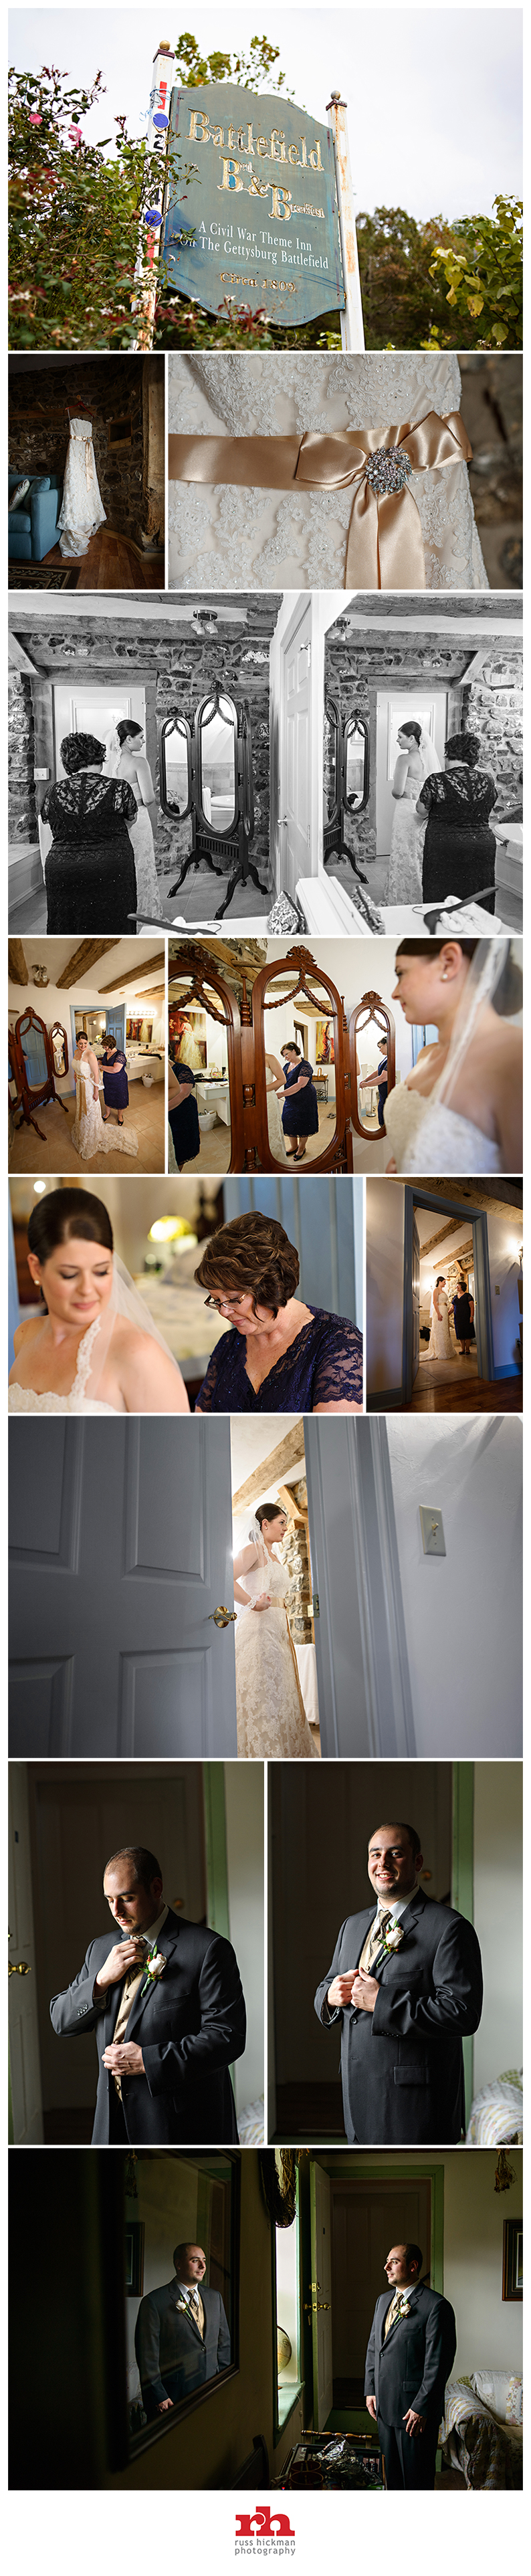 Philadelphia-Wedding-Photographer-TPW02